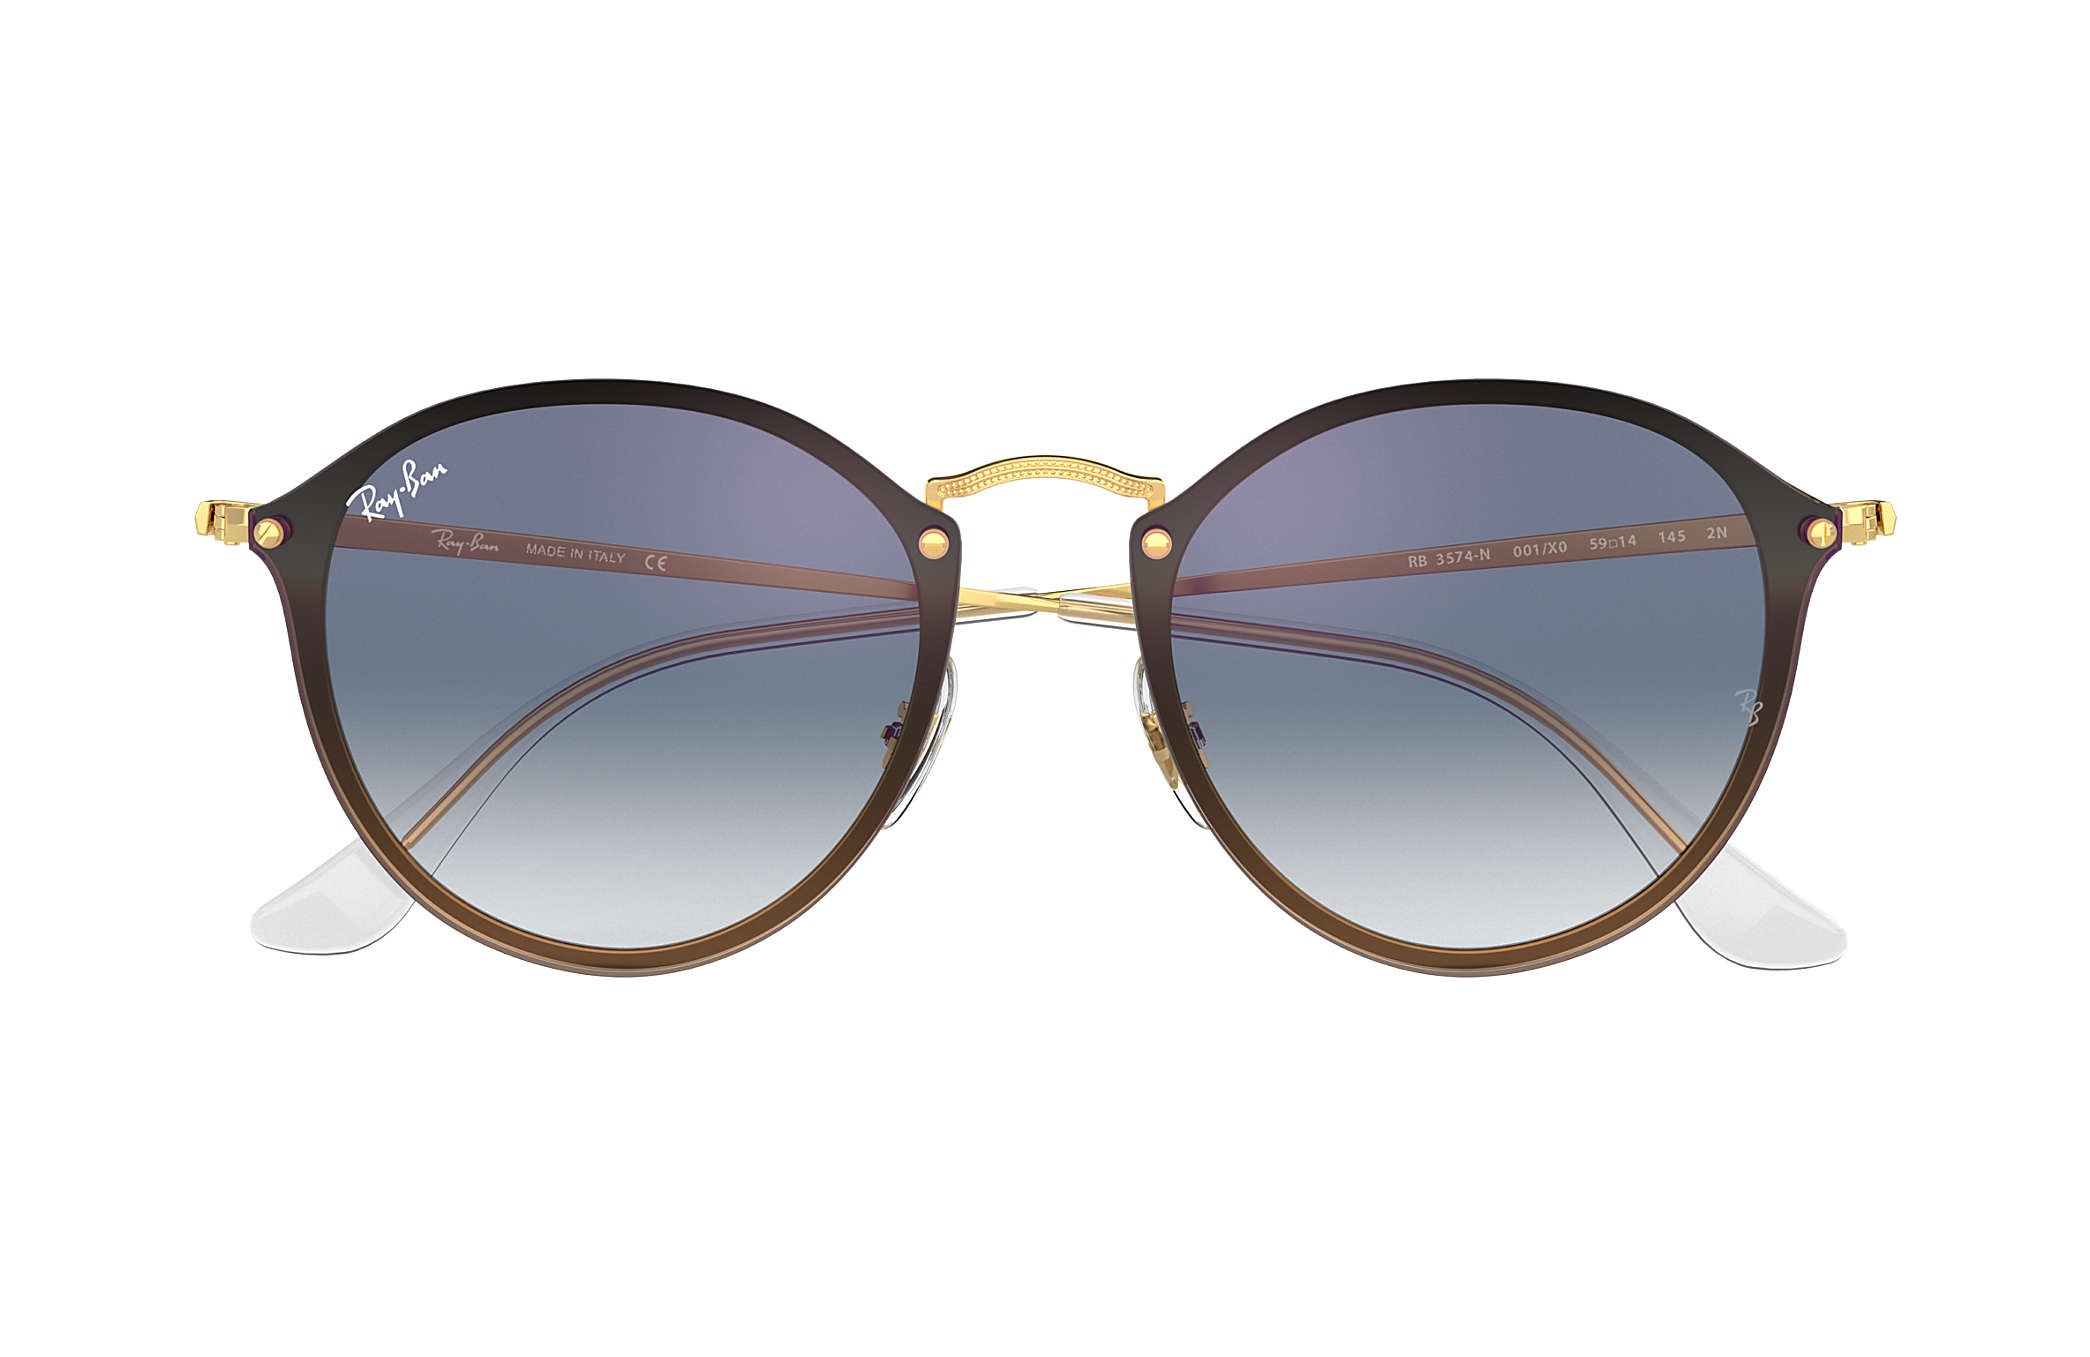 84a5425d1 Ray-Ban Blaze Round RB3574N Gold - Metal - Blue Lenses - 0RB3574N001 ...